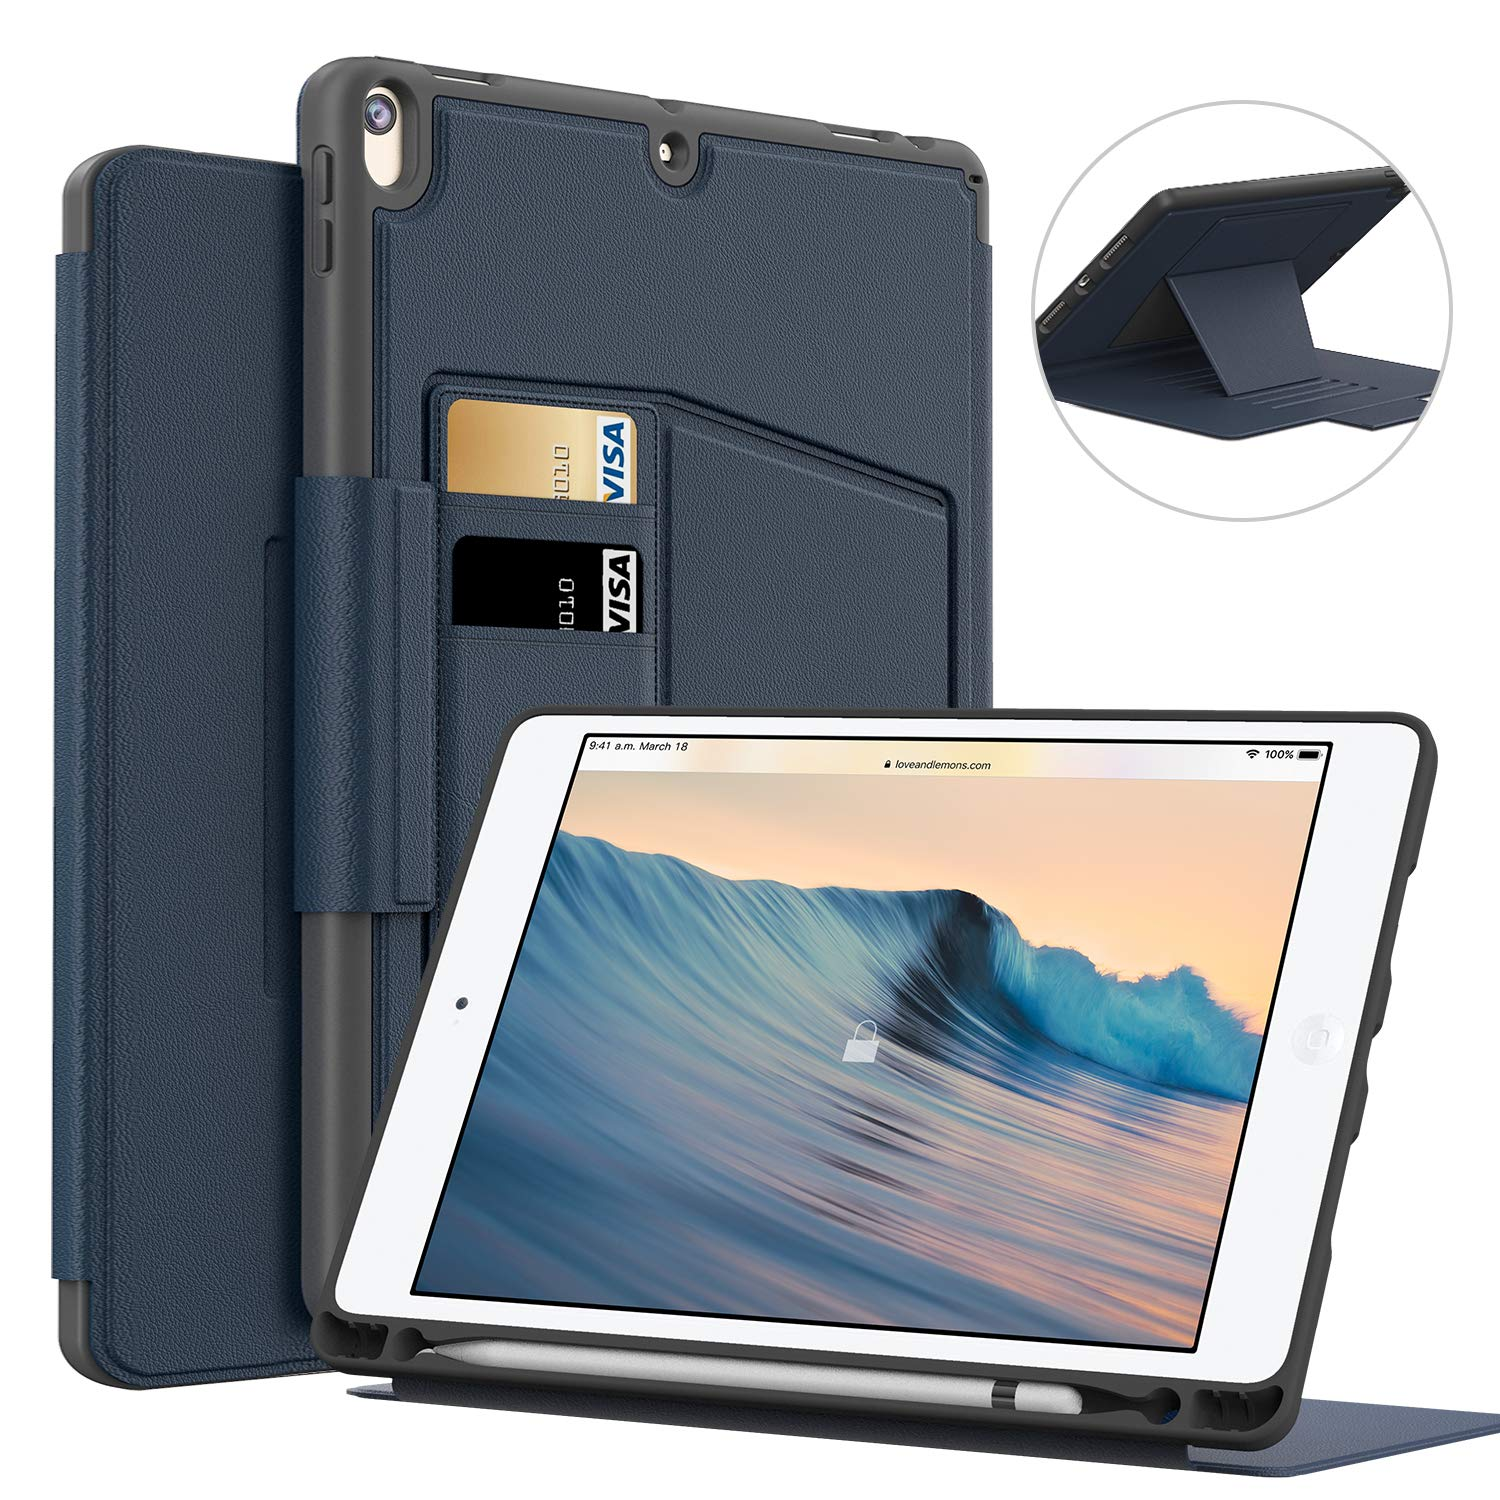 BeeFly iPad Air 10.5 Case, Protective Rugged Full Body Leather Shockproof with 8 Adjustable Magnetic Stand Pencil Holder Case for iPad 10.5 -Navy Blue